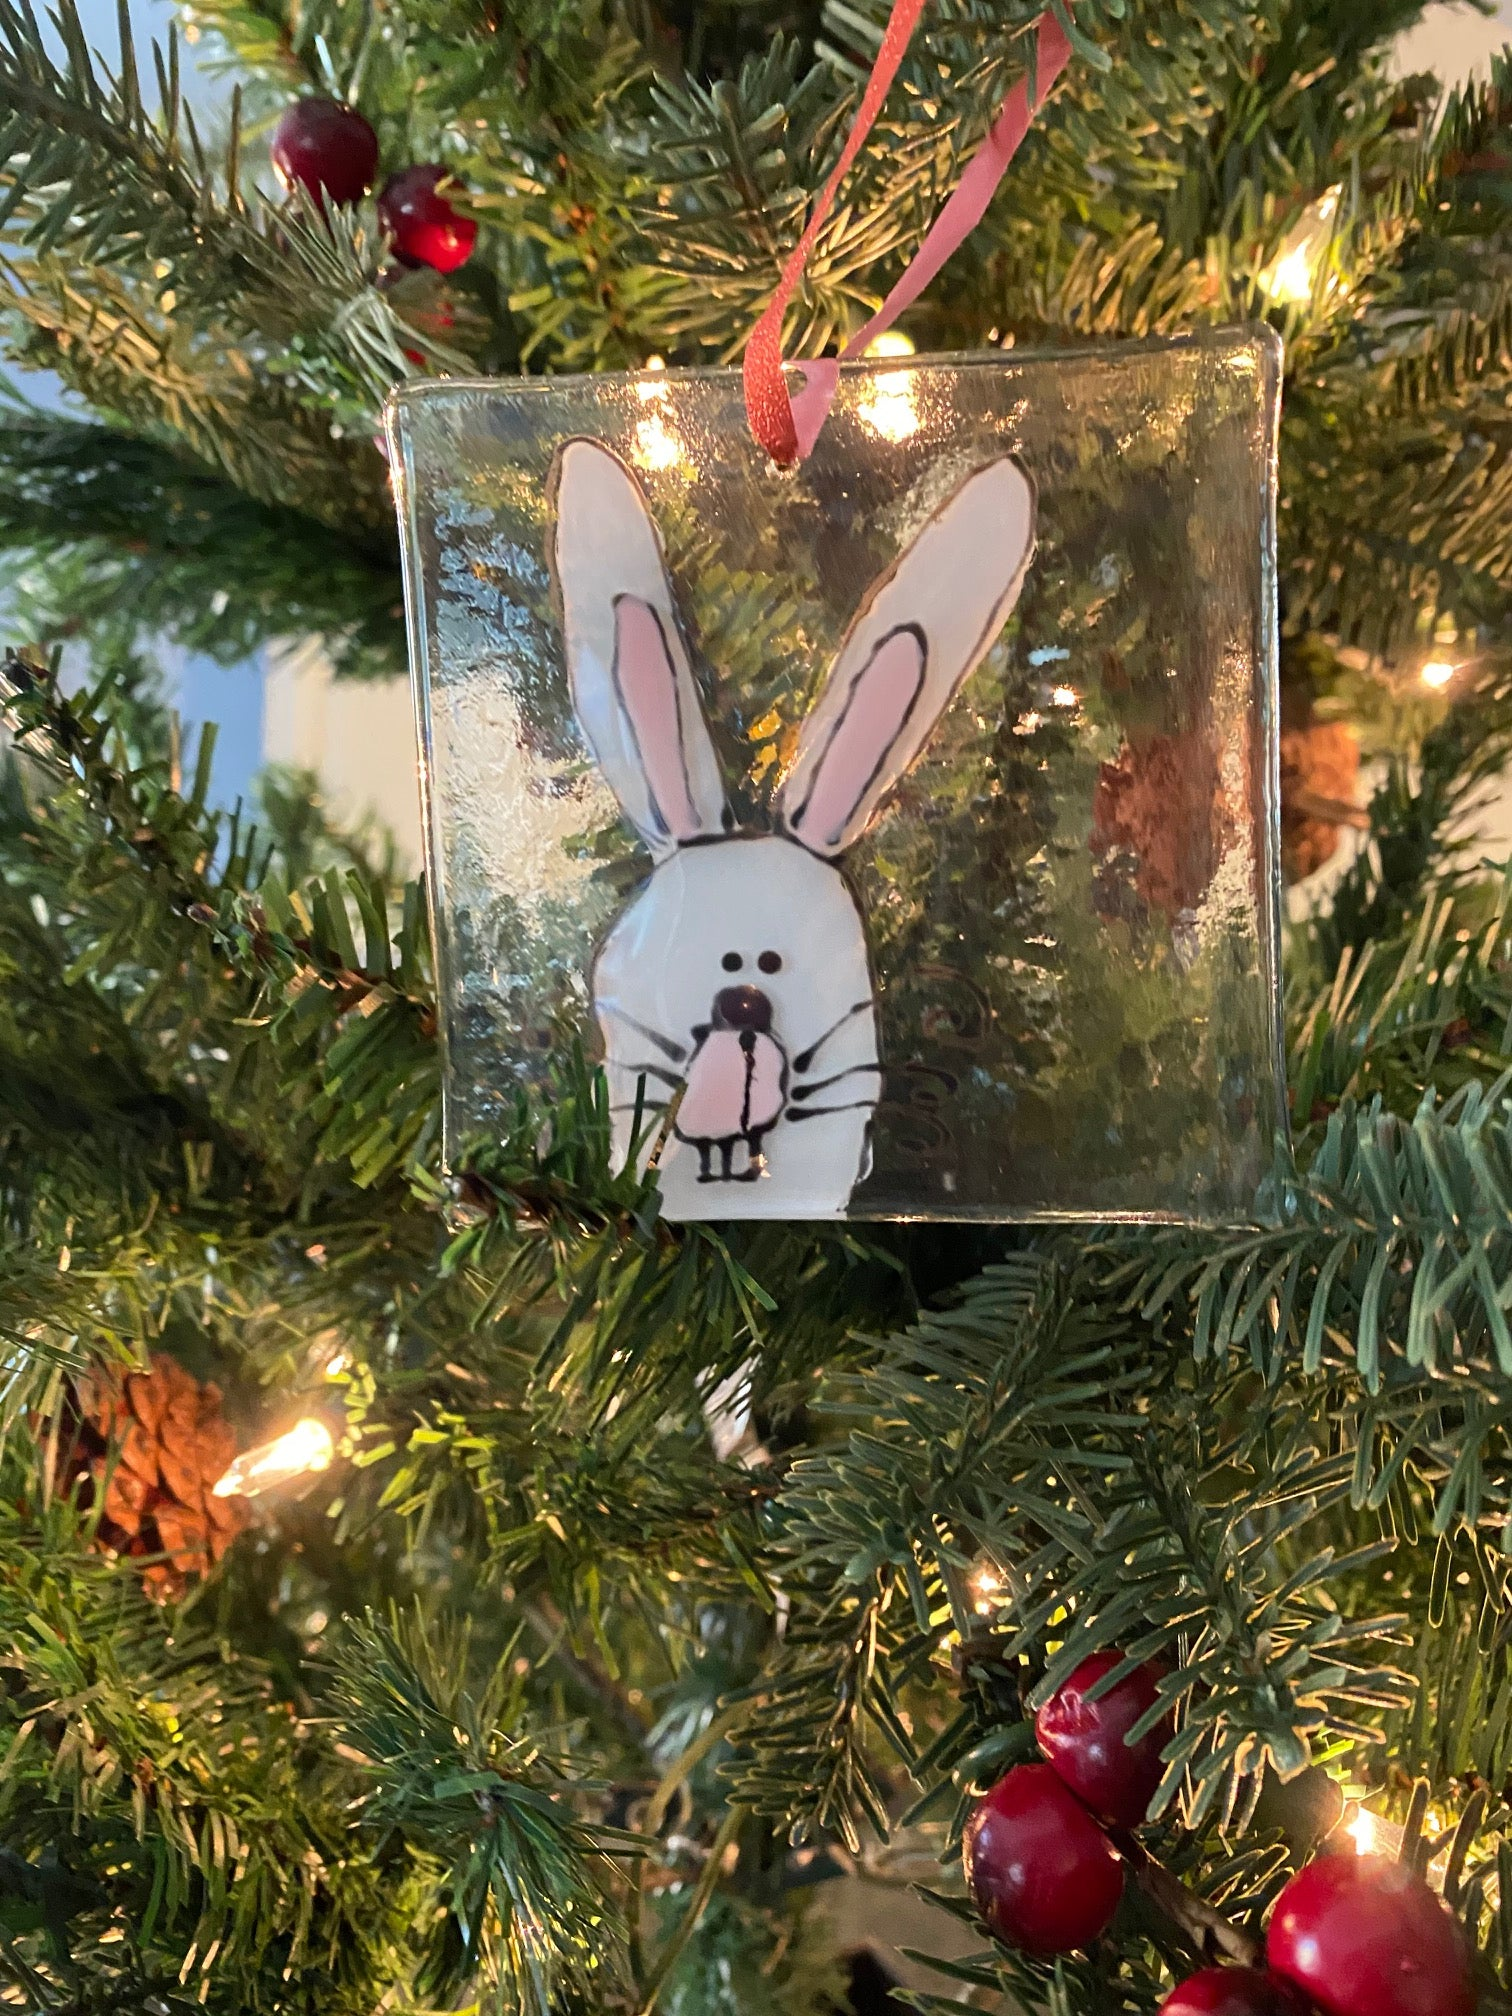 Boojangles the Bunny - Hand Painted Glass Ornament